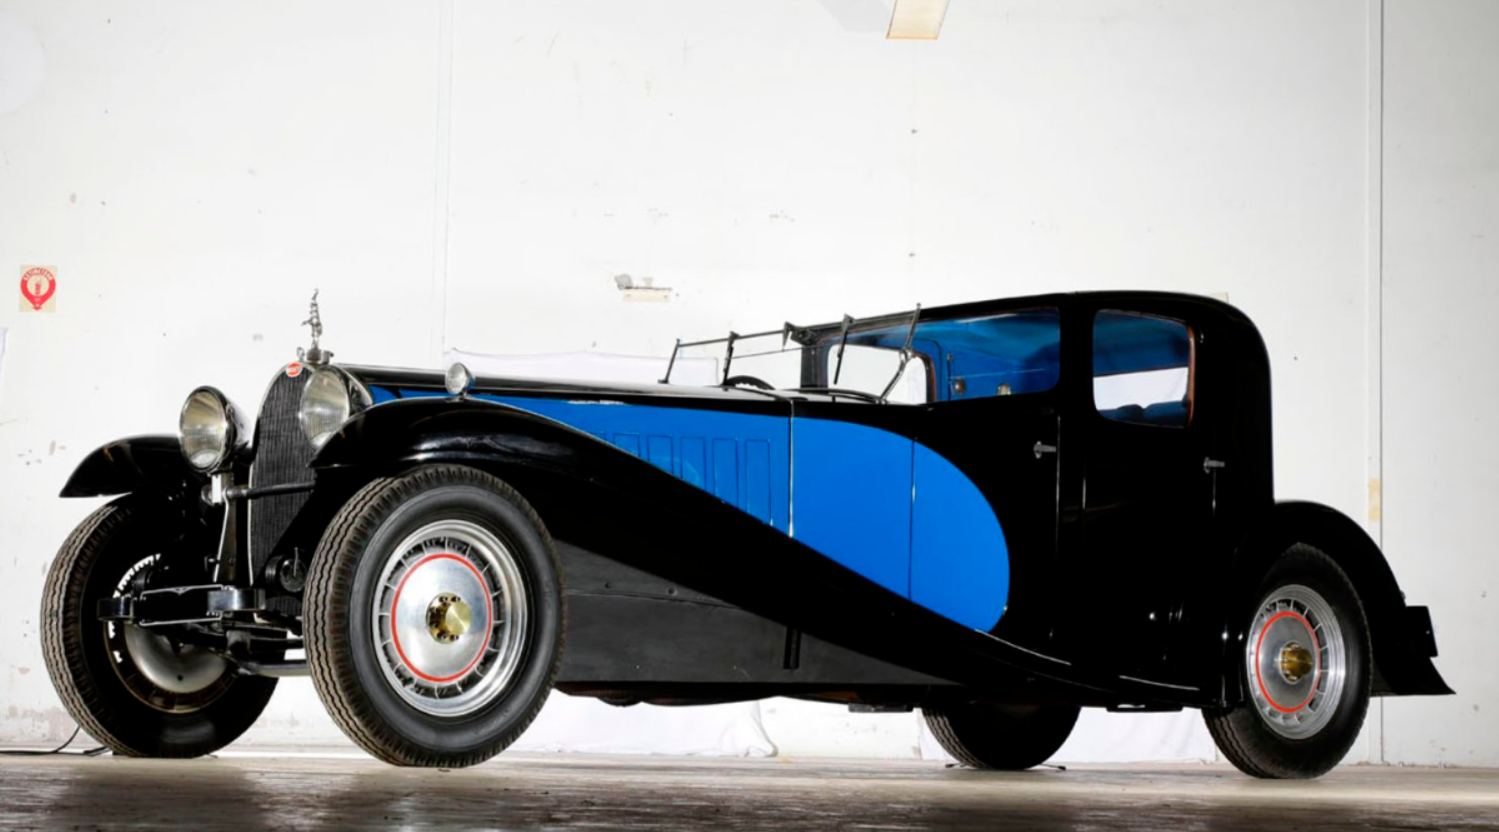 1930 Bugatti Type 46 Coupe de Ville | ClicCarWeekly.net on bugatti limousine, bugatti fast and furious 7, bugatti superveyron, ettore bugatti, bugatti emblem, bugatti 16c galibier concept, bugatti stretch limo, bugatti eb118, bugatti tumblr, bugatti eb110, bugatti phone, bugatti hd, bugatti company, bugatti type 51, bugatti finale, bugatti prototypes, bugatti engine, bentley 3.5 litre, bugatti hennessey venom, bugatti design, roland bugatti, bugatti with girls, bugatti veyron, bugatti mph, bugatti aventador, bugatti royale,